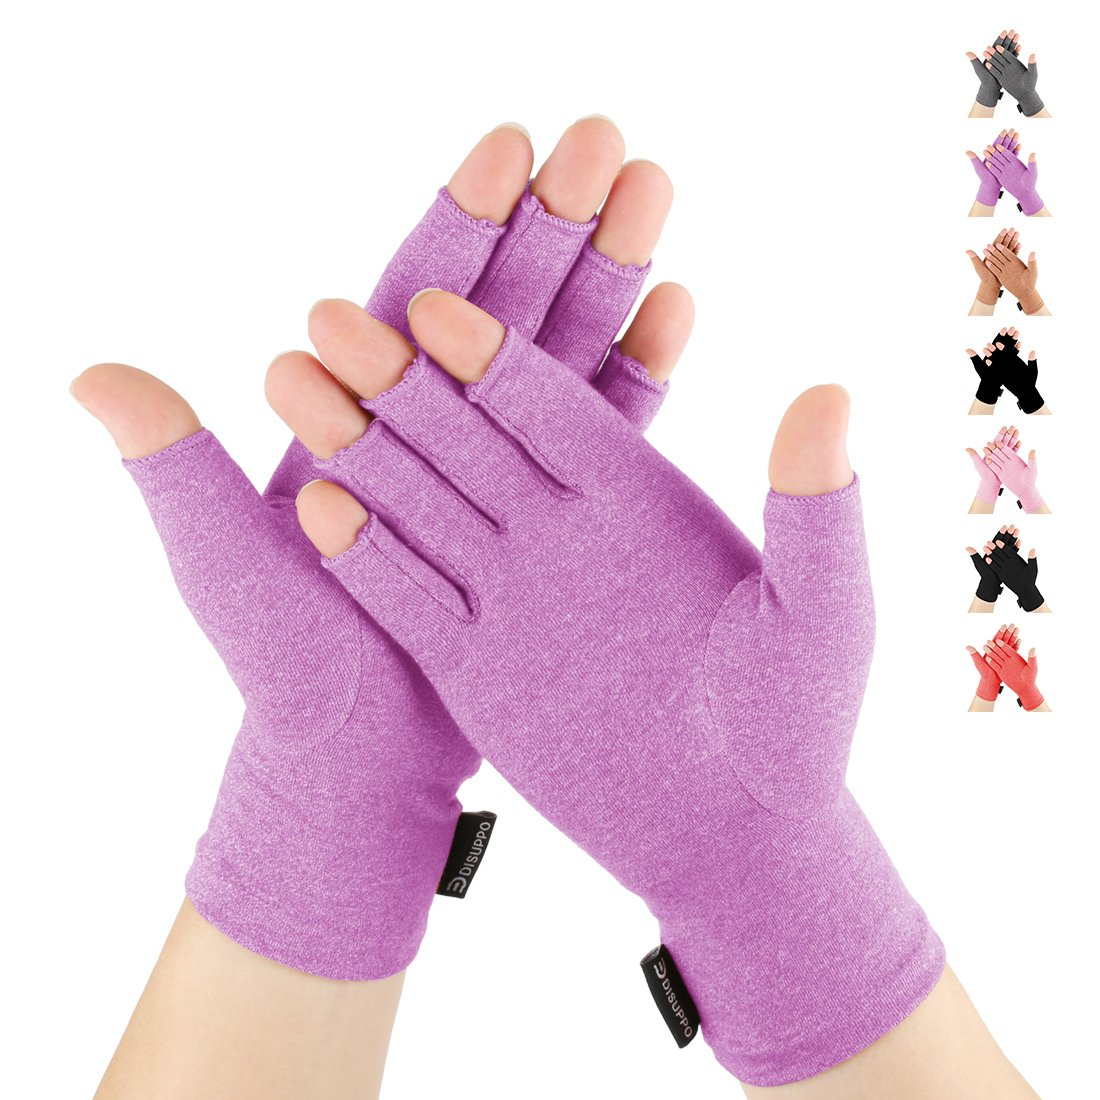 DISUPPO Arthritis Gloves Women and Men Relieve Pain from Rheumatoid, RSI,Carpal Tunnel, Compression Gloves Fingerless for Computer Typing, Dailywork, Hands and Joints Pain Relief (Purple, Medium)